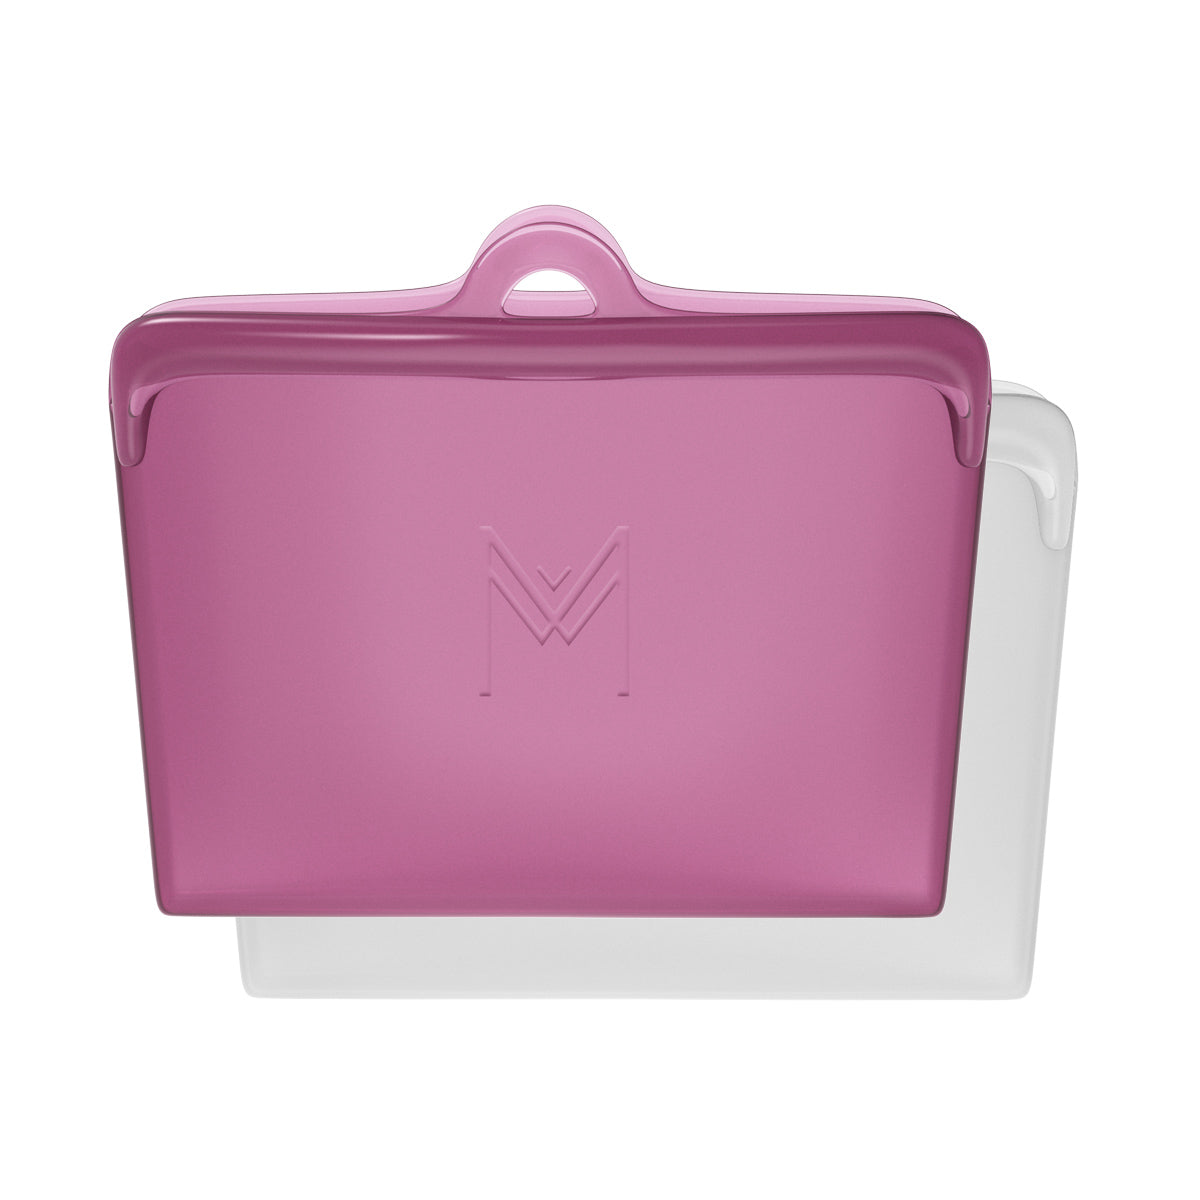 MontiiCo Pack & Snack Silicone Food Pouch - Rose-Food Pouches-Lunchbox Mini